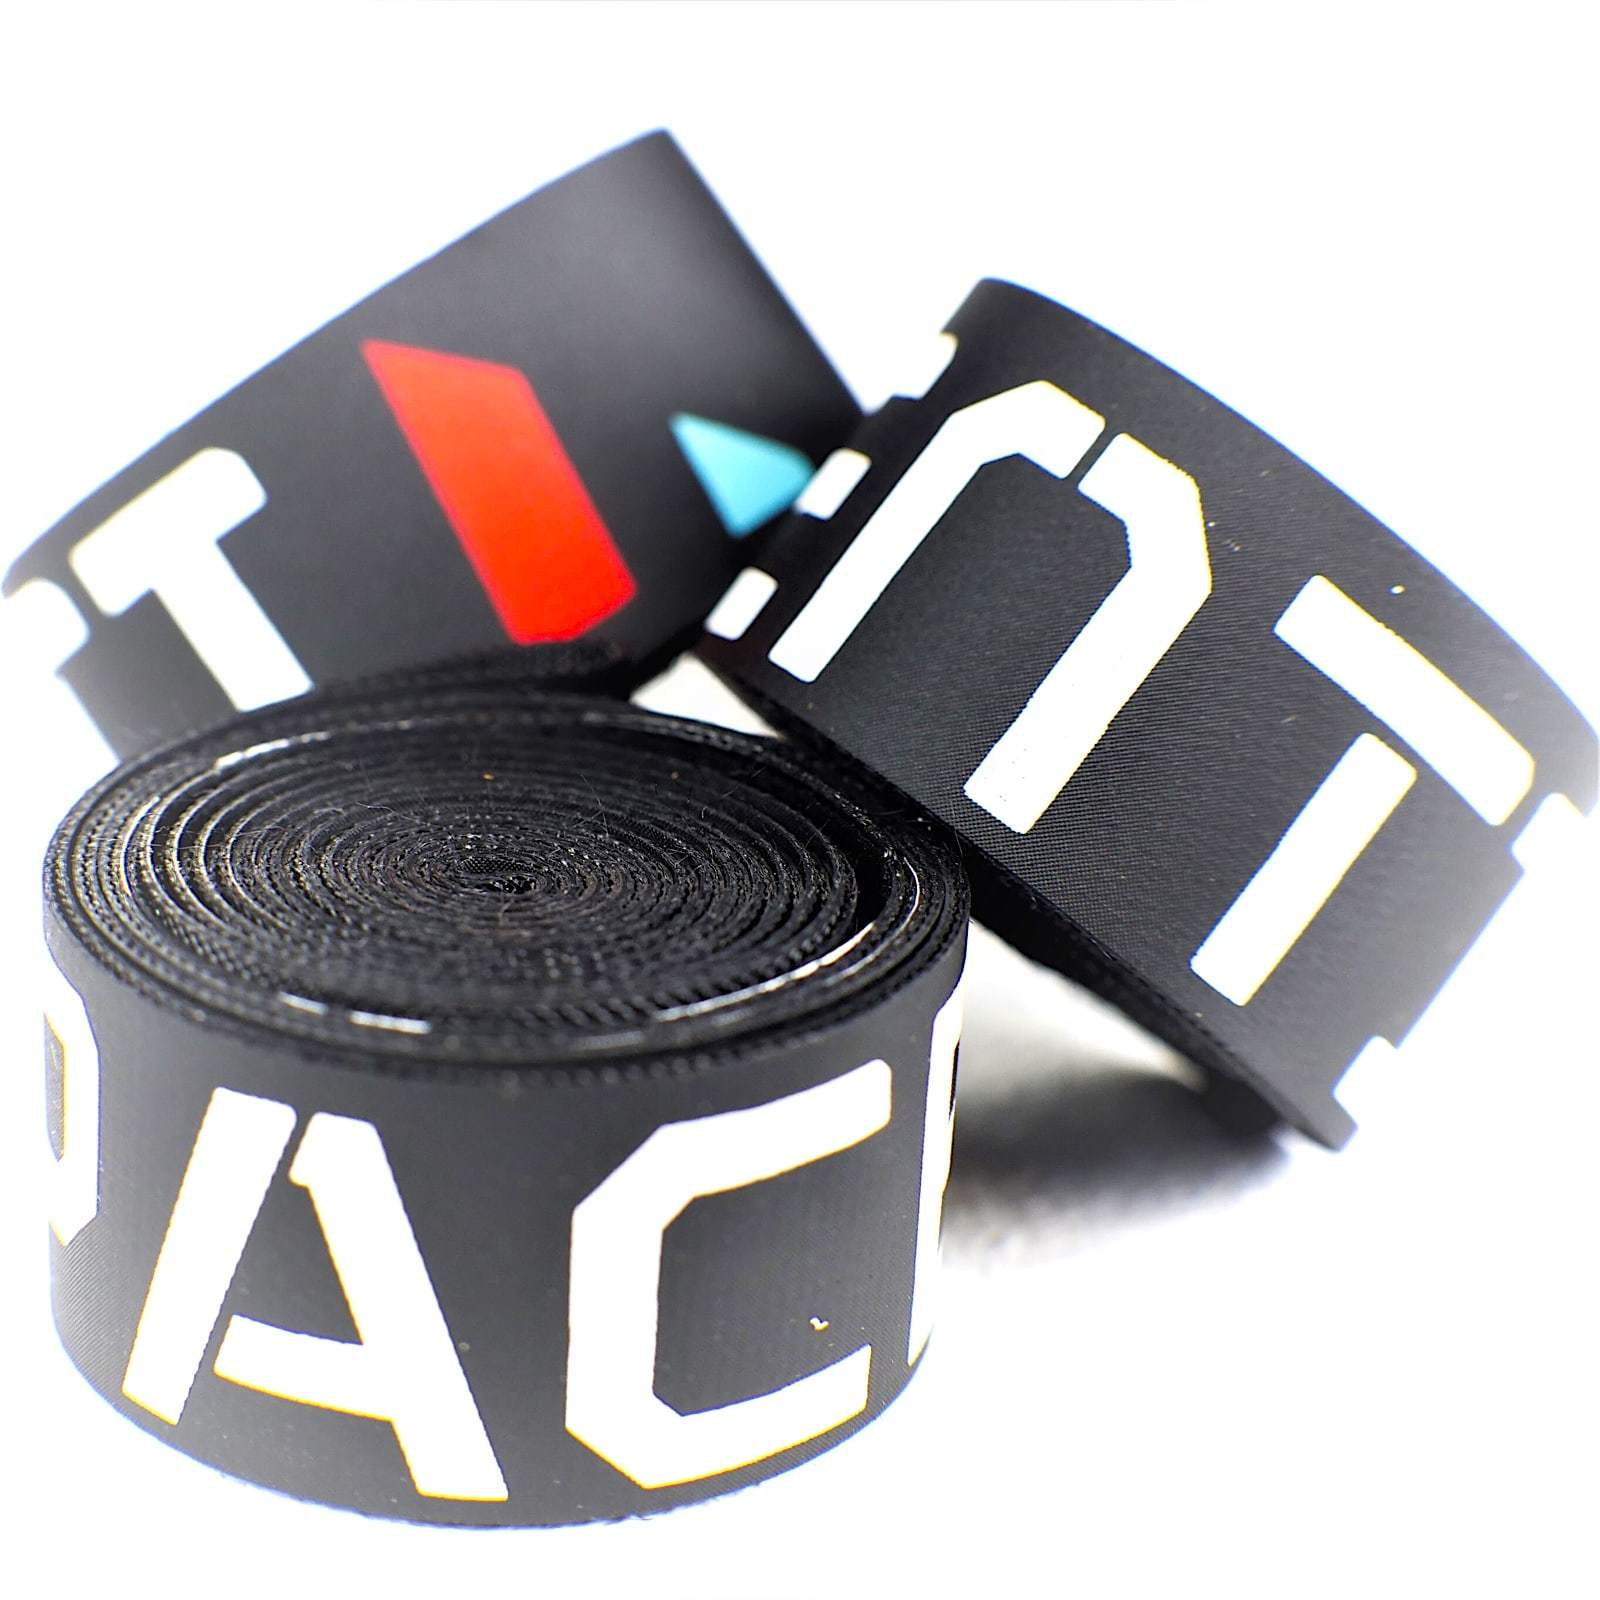 Rim tape 19mm snap fit pair, Black printed